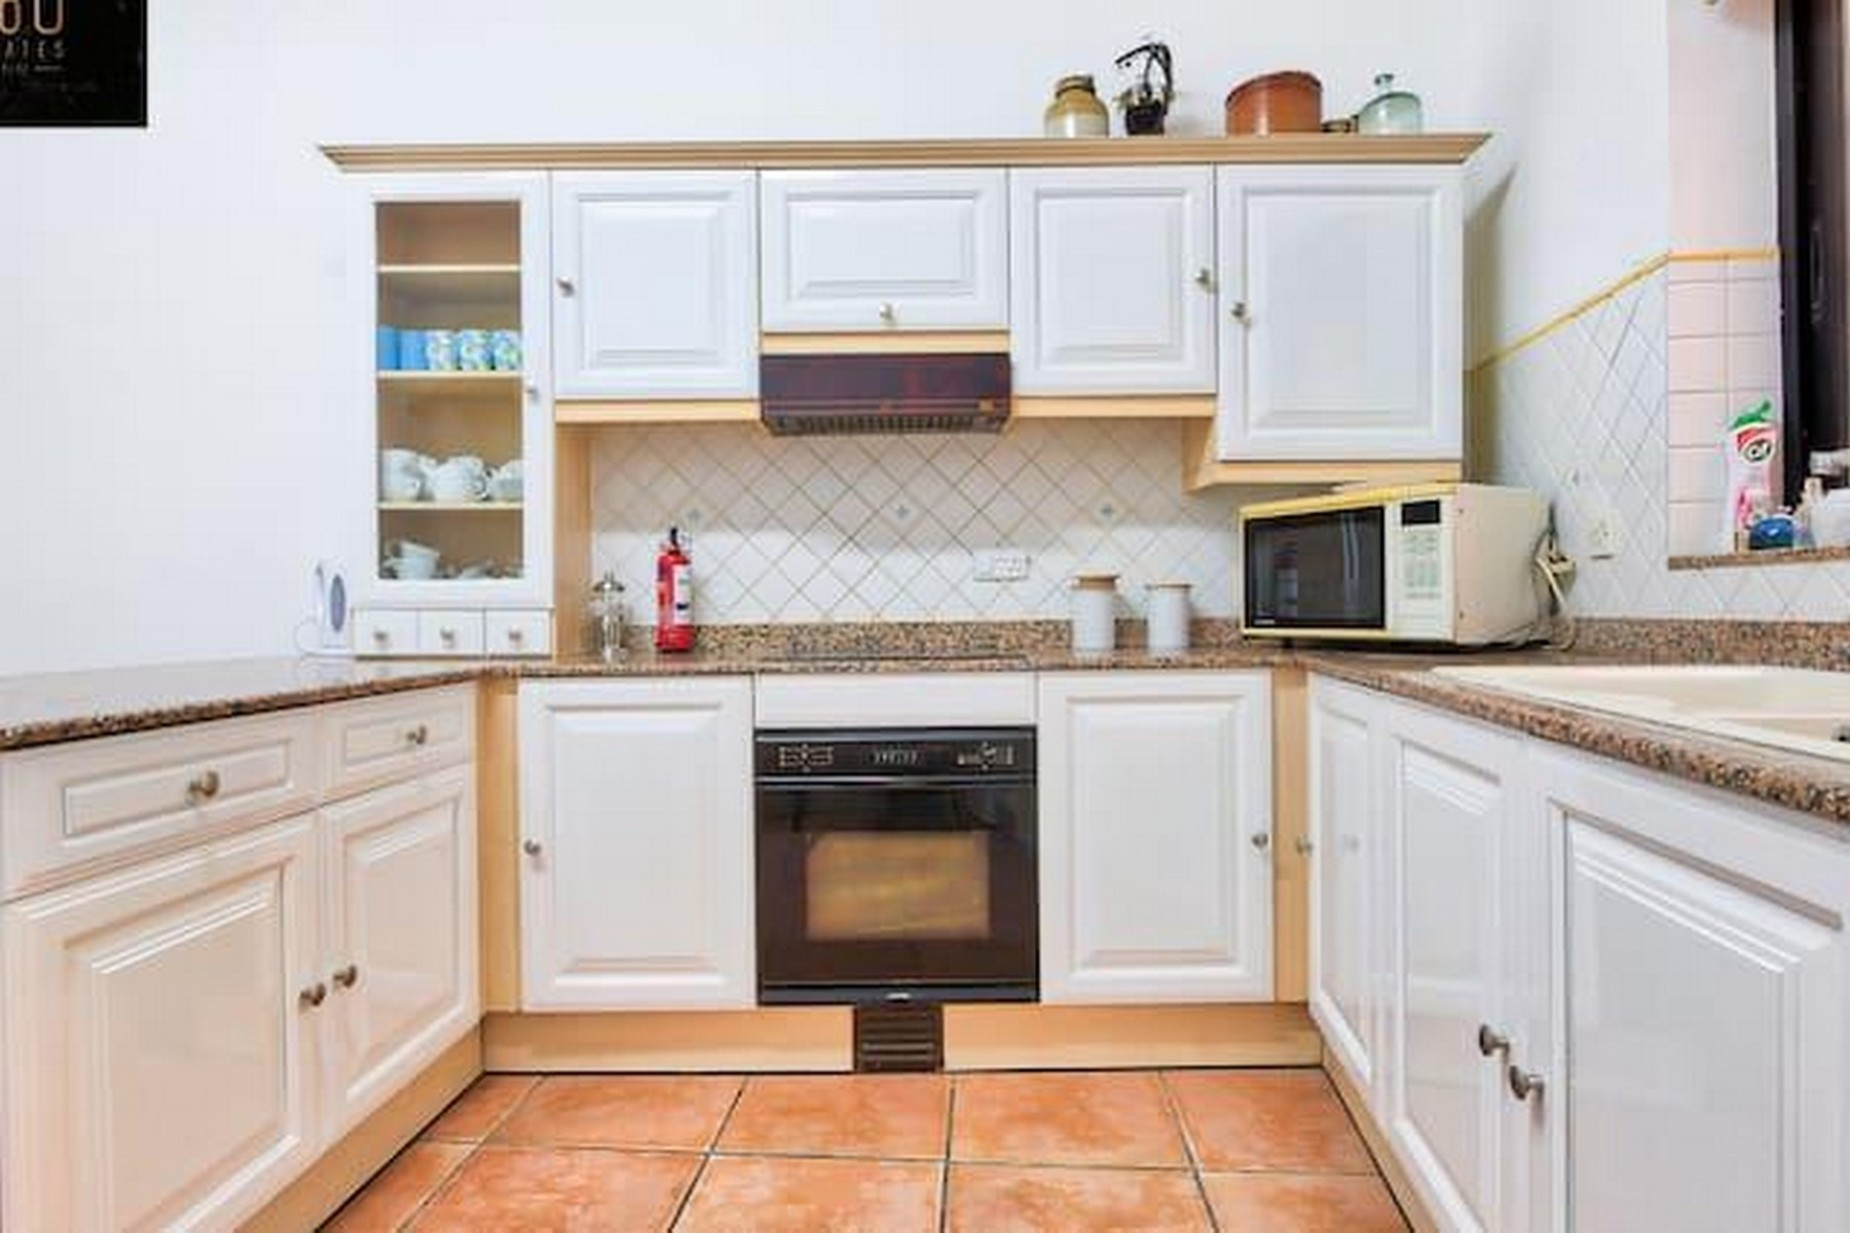 4 bed Apartment For Rent in St Julian's, St Julian's - thumb 9